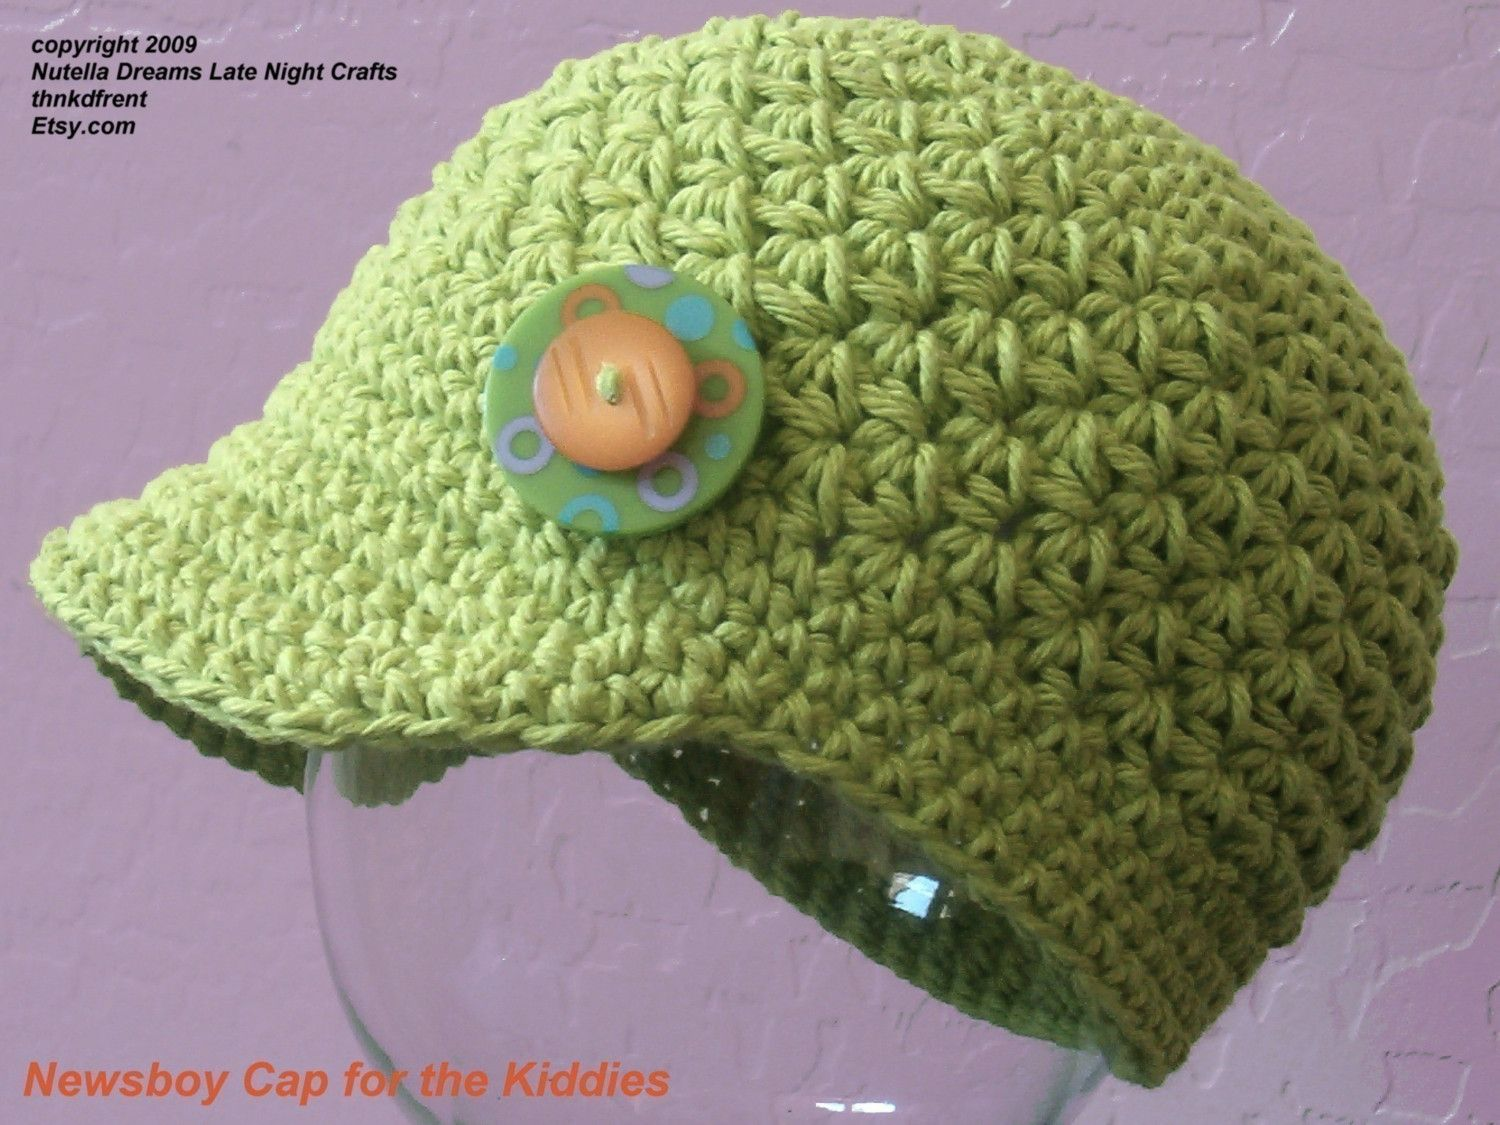 Free Crochet Patterns | NEWSBOY CAP CROCHET PATTERN « CROCHET FREE ...